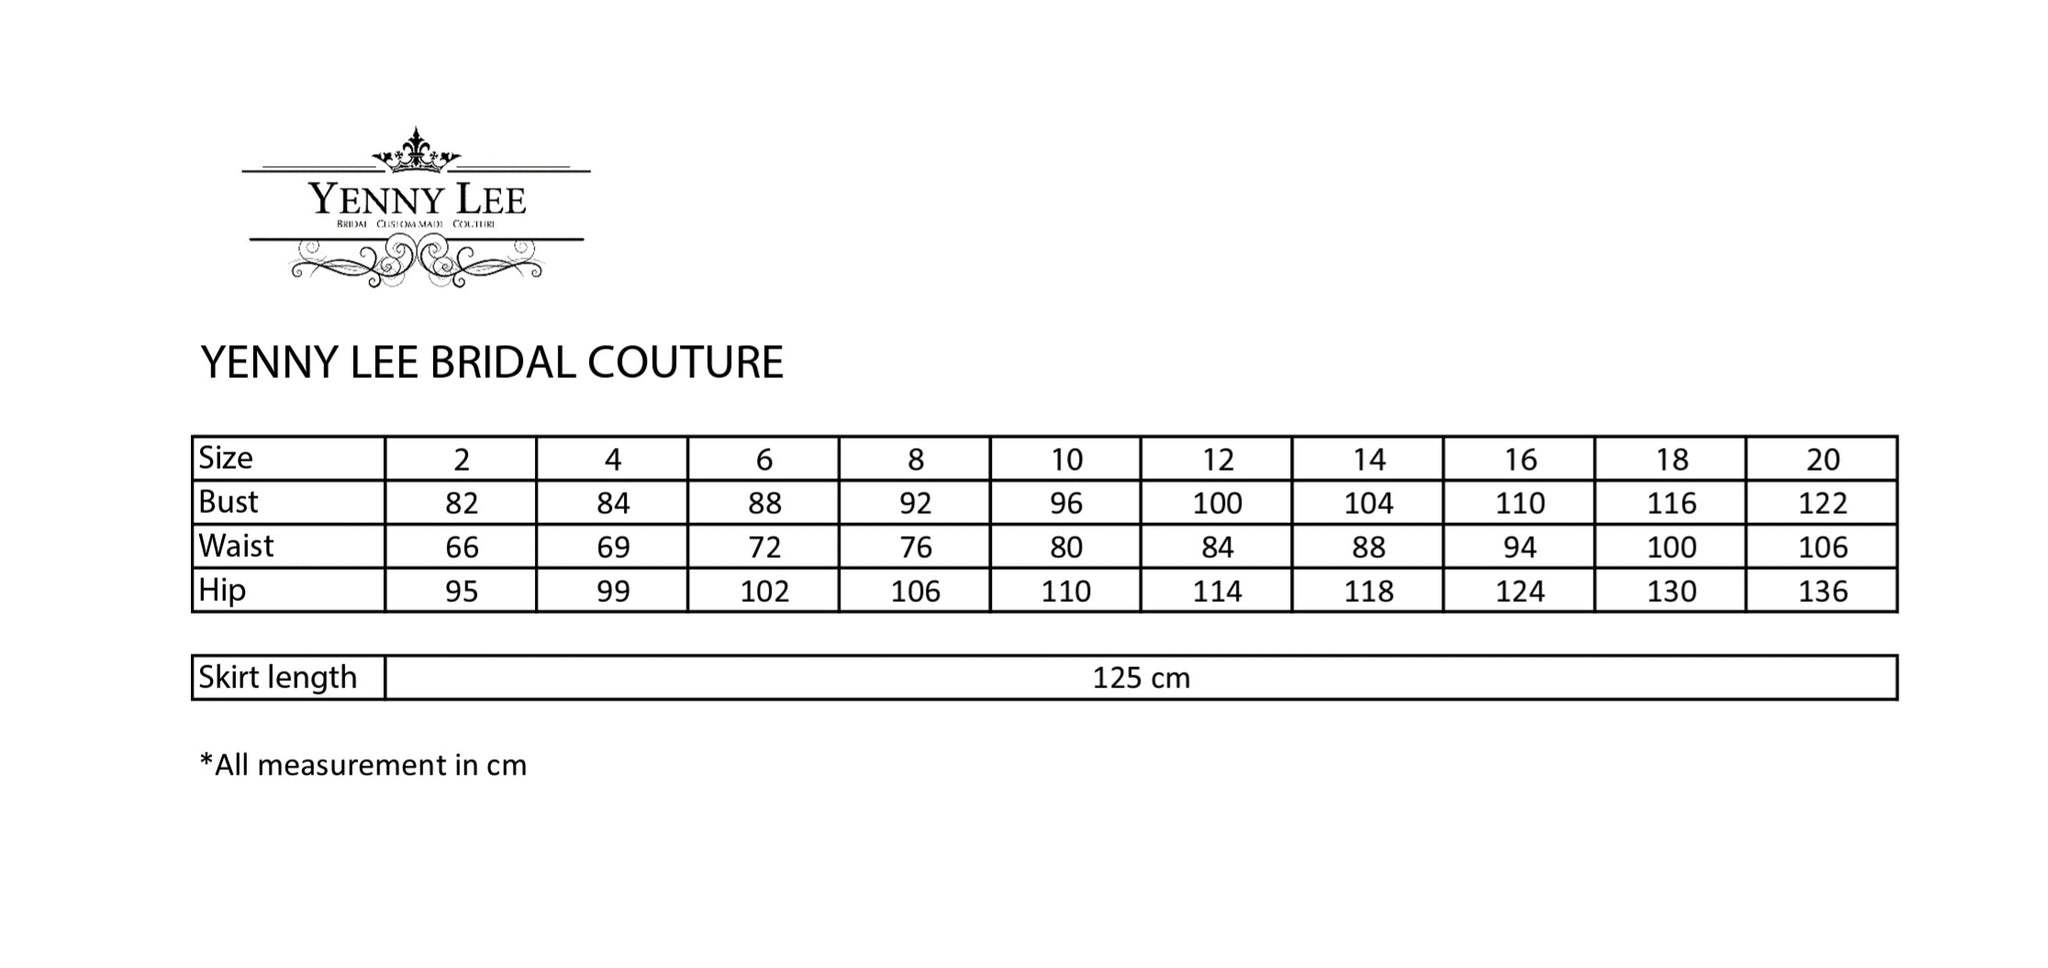 size chart - how to find your size - yenny lee bridal couture